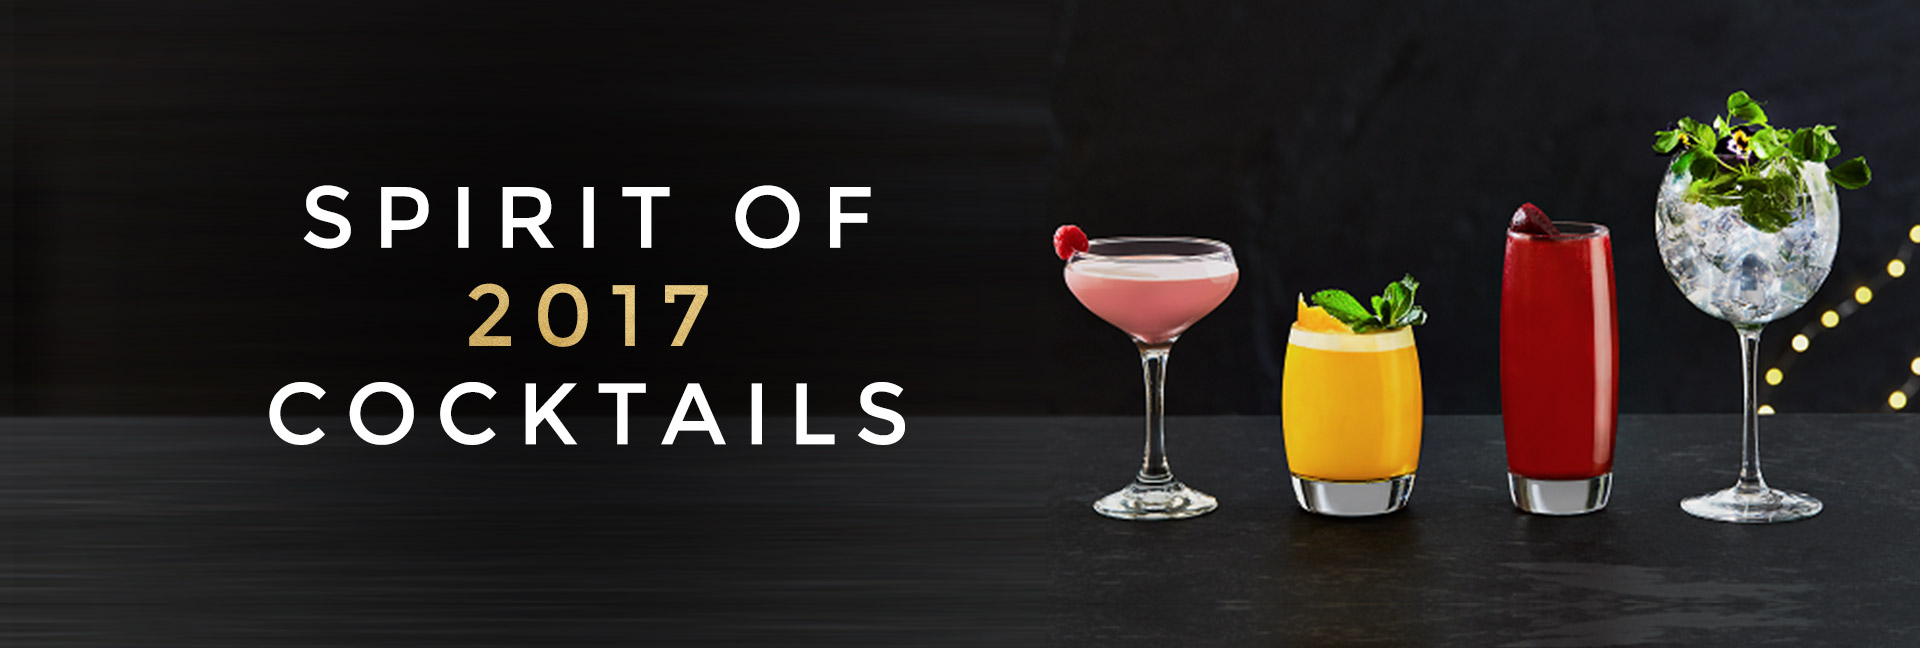 Spirit of 2017 cocktails at All Bar One Bath